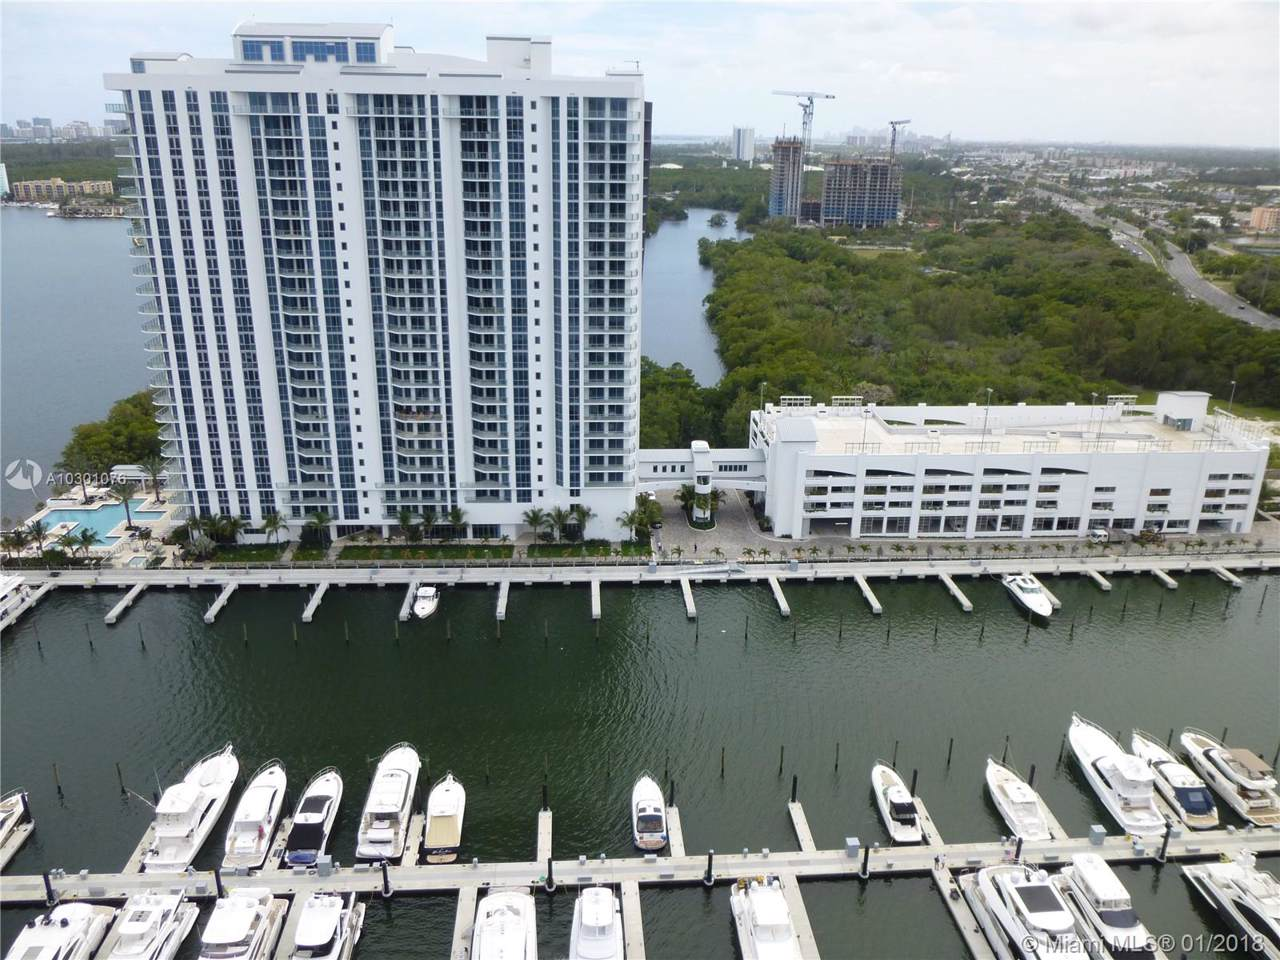 17211 Biscayne Blvd Bs#22 - Photo 1